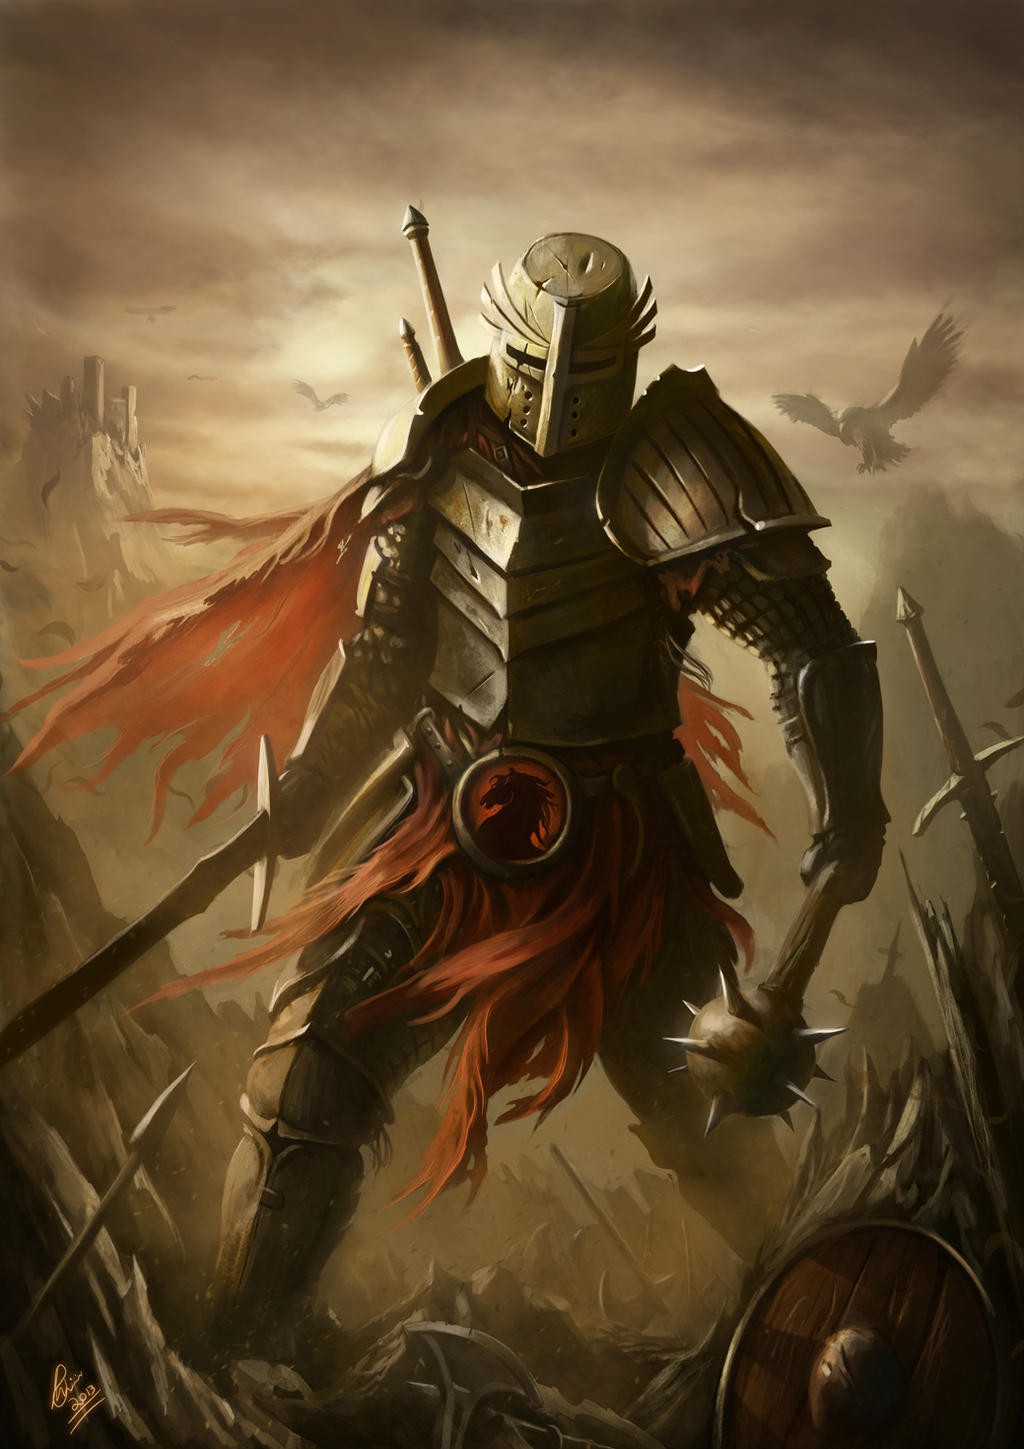 Knight cover artwork by raymondminnaar on deviantart for Cool fantasy drawings